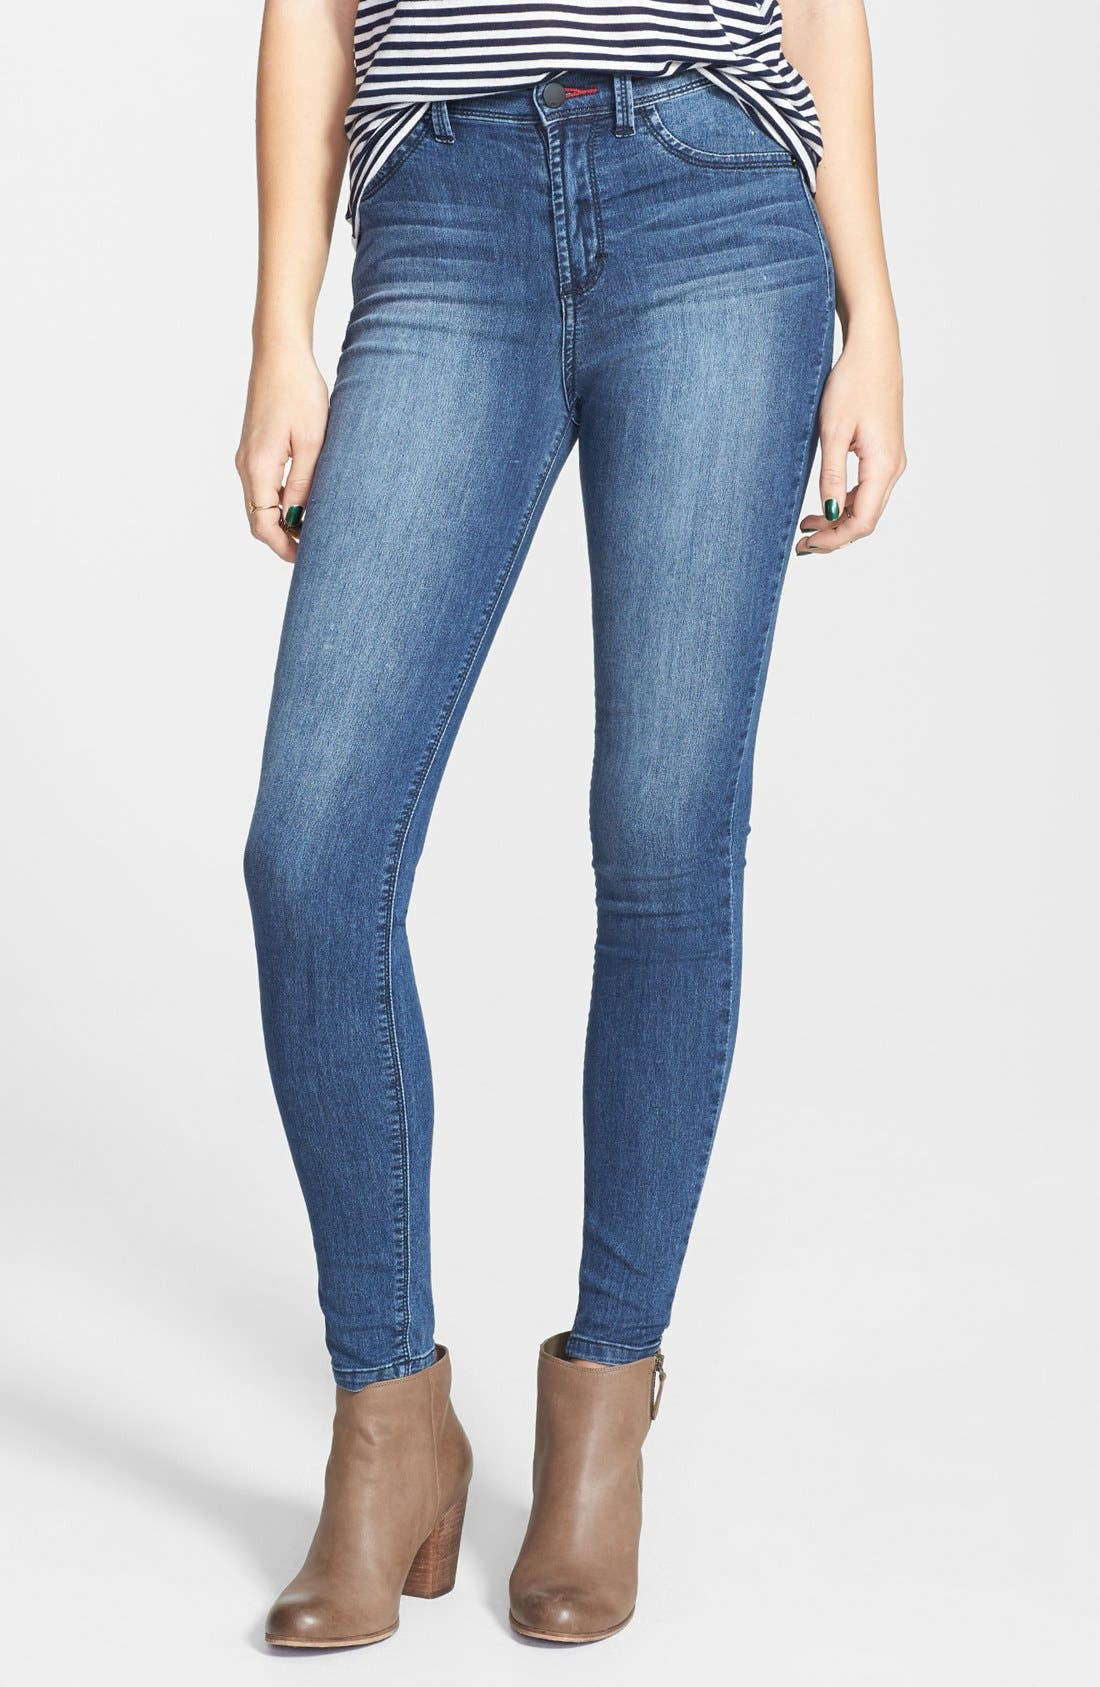 Main Image - SP Black High Waist Skinny Jeans (Medium Wash) (Juniors) (Online Only)